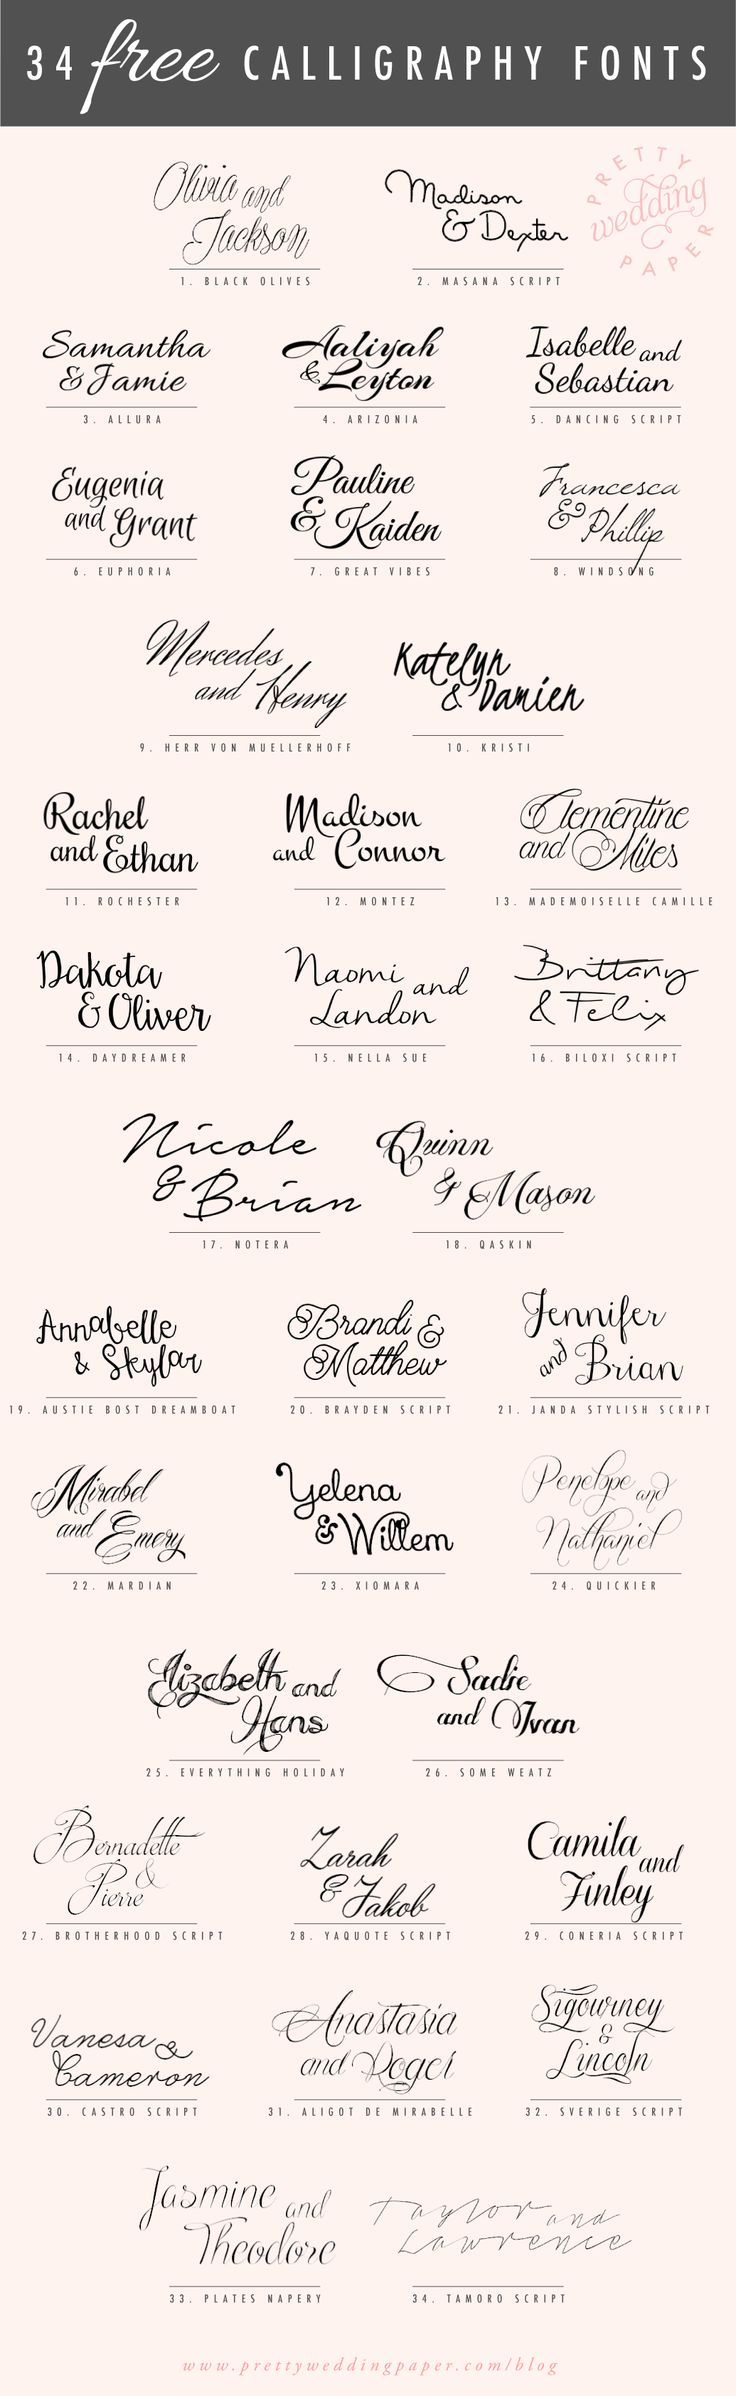 34 free calligraphy script fonts for wedding invitations fontes 34 free calligraphy script fonts for wedding invitations stopboris Gallery